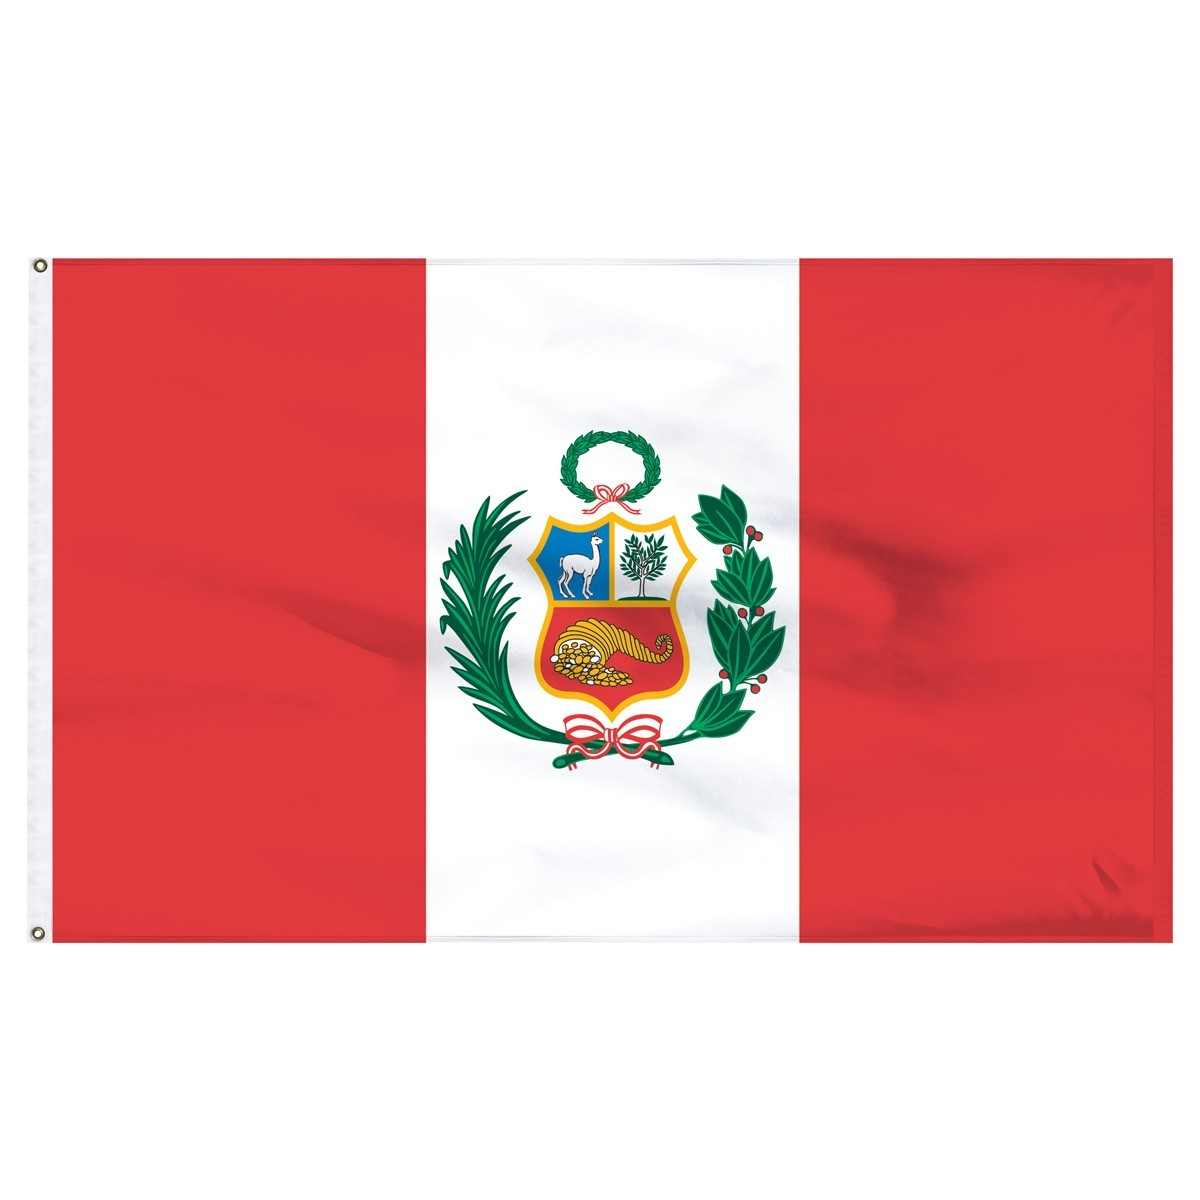 Peru 3' x 5' Outdoor Nylon Flag